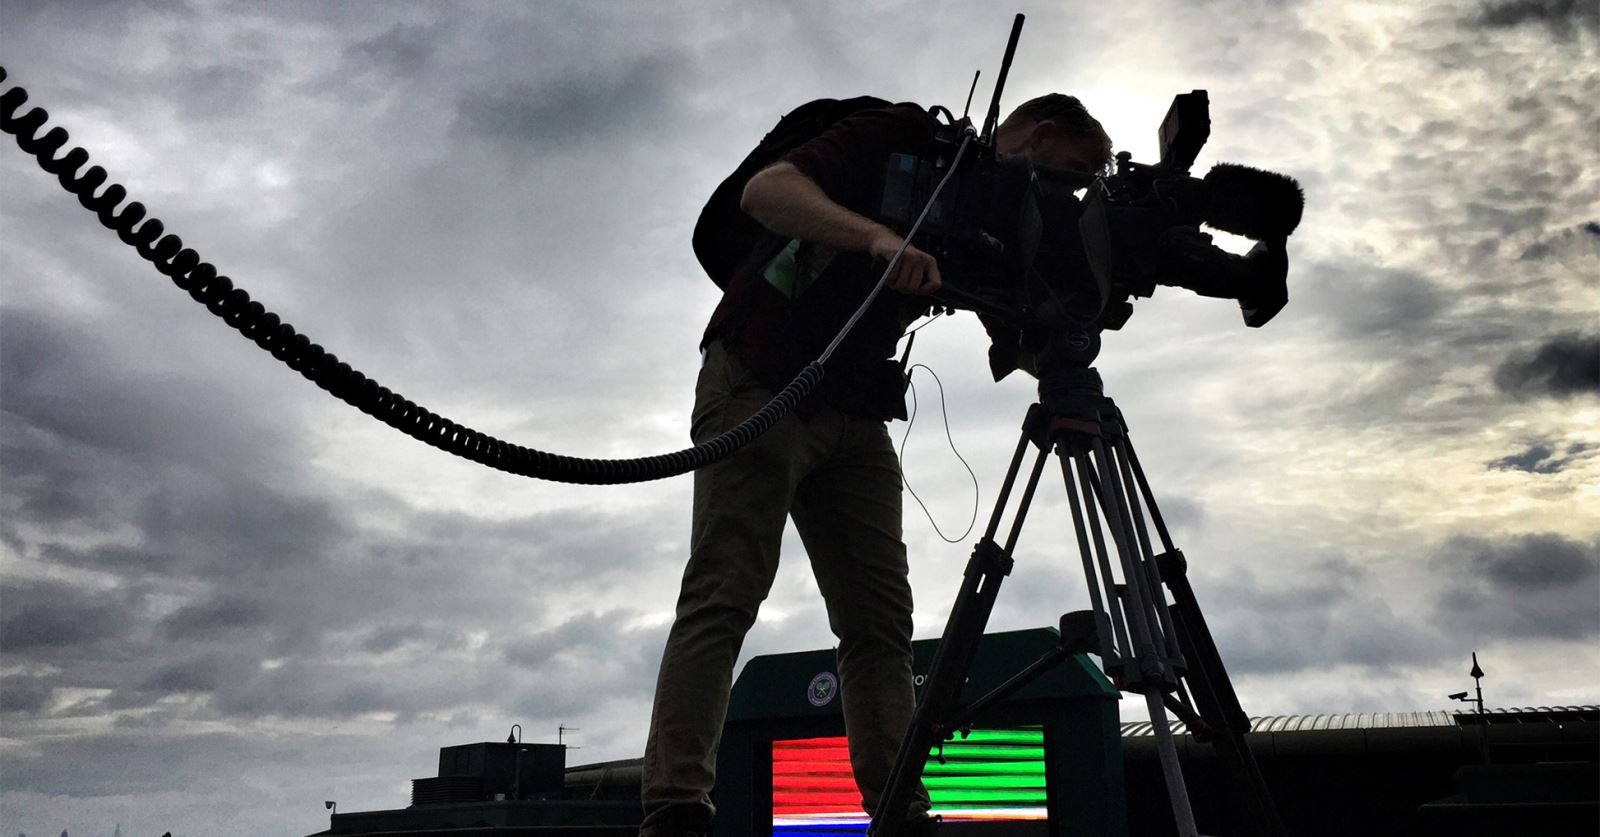 Thanks to Sound Recordist Paul Cutler for this lovely moody shot from this year's Wimbledon Tennis